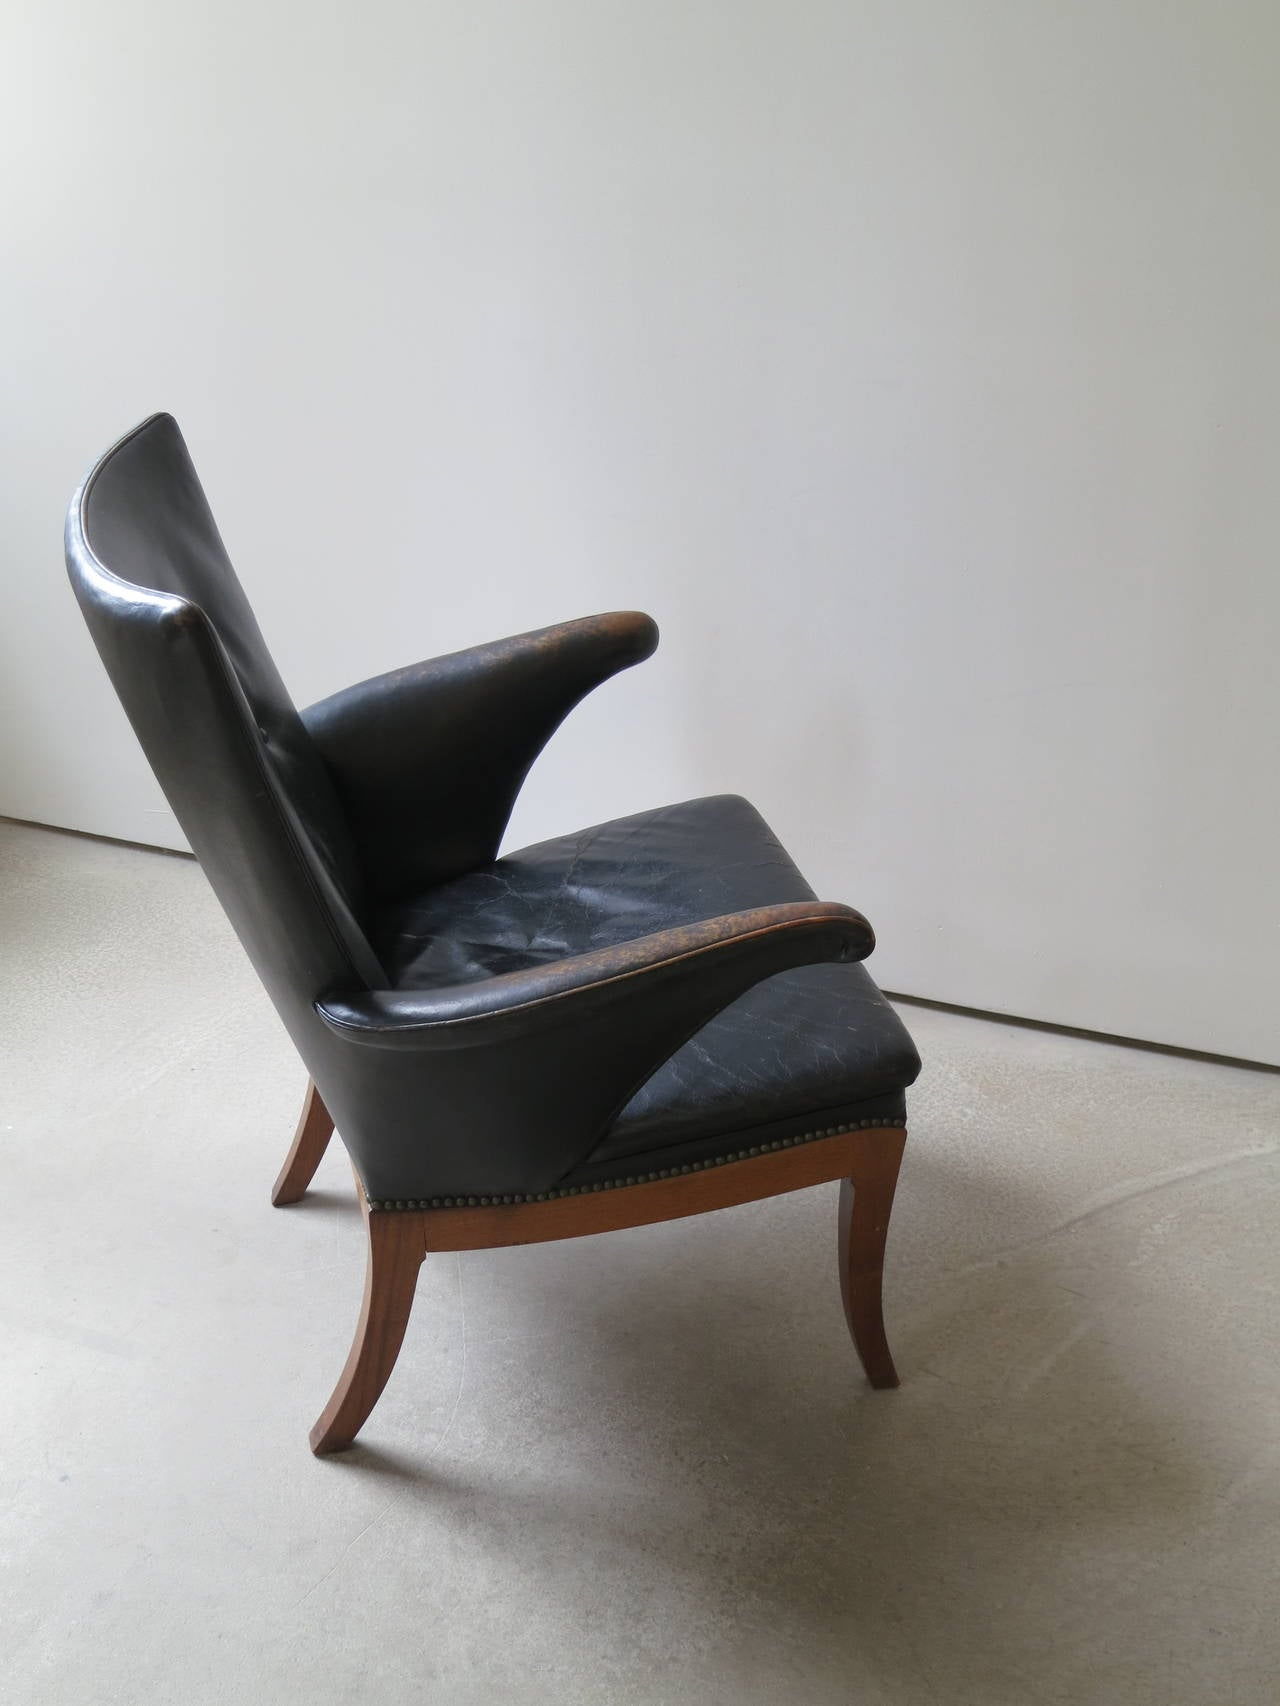 Armchair in Original Black-Brown Leather by Frits Henningsen, 1930s. This chair, which dates to the 1930s, retains its original patinated black-brown leather upholstery and brass nailheads.